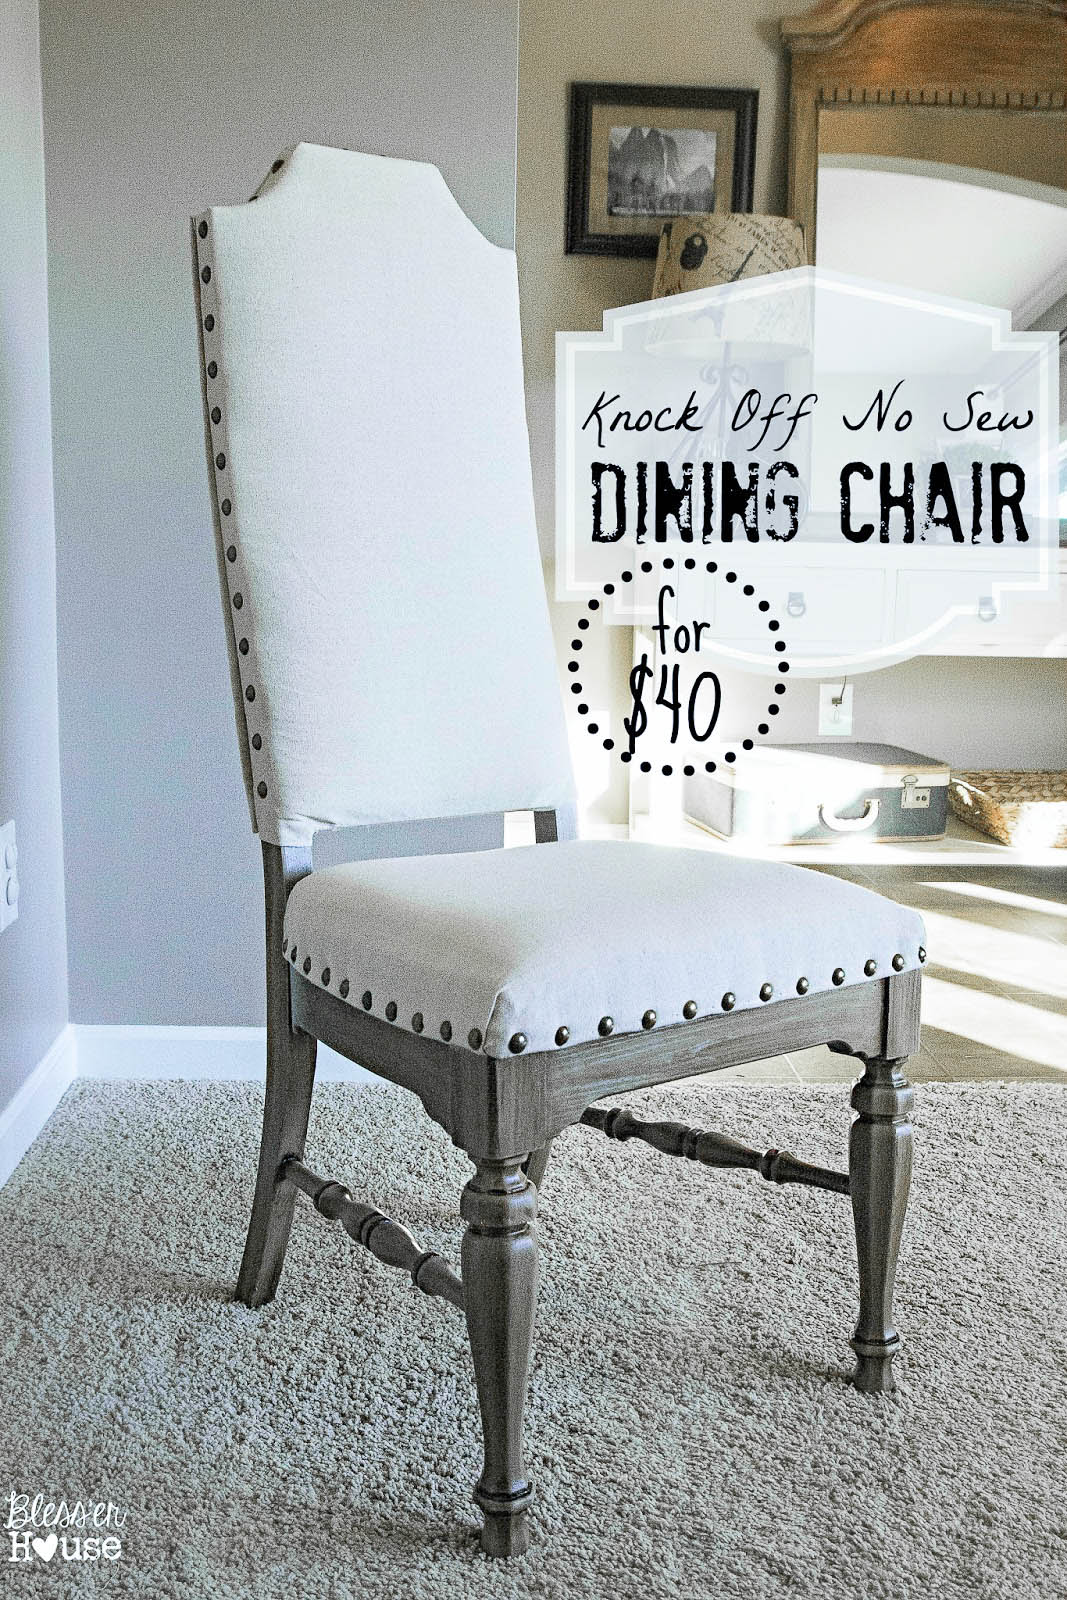 Shell Chair Knock Off Metal Leg Best Of Bless 39er House Top 10 Projects 2014